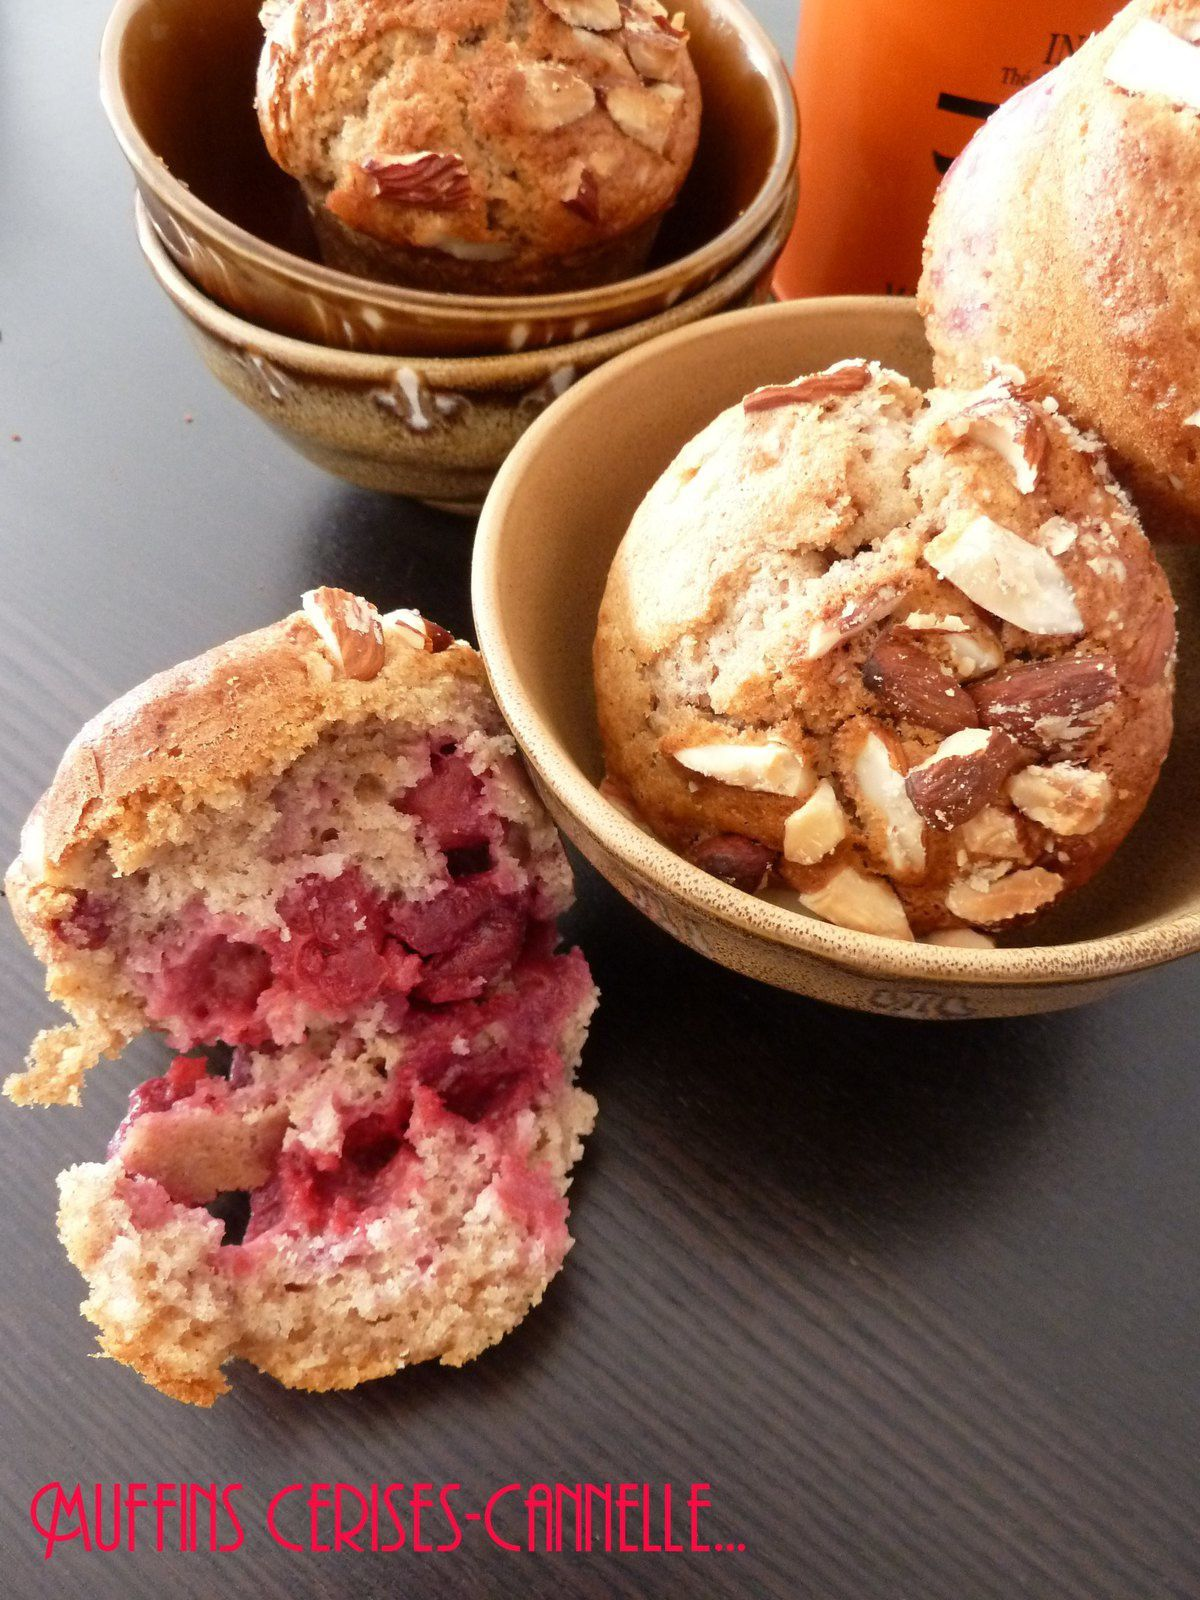 muffins cerises amande cannelle